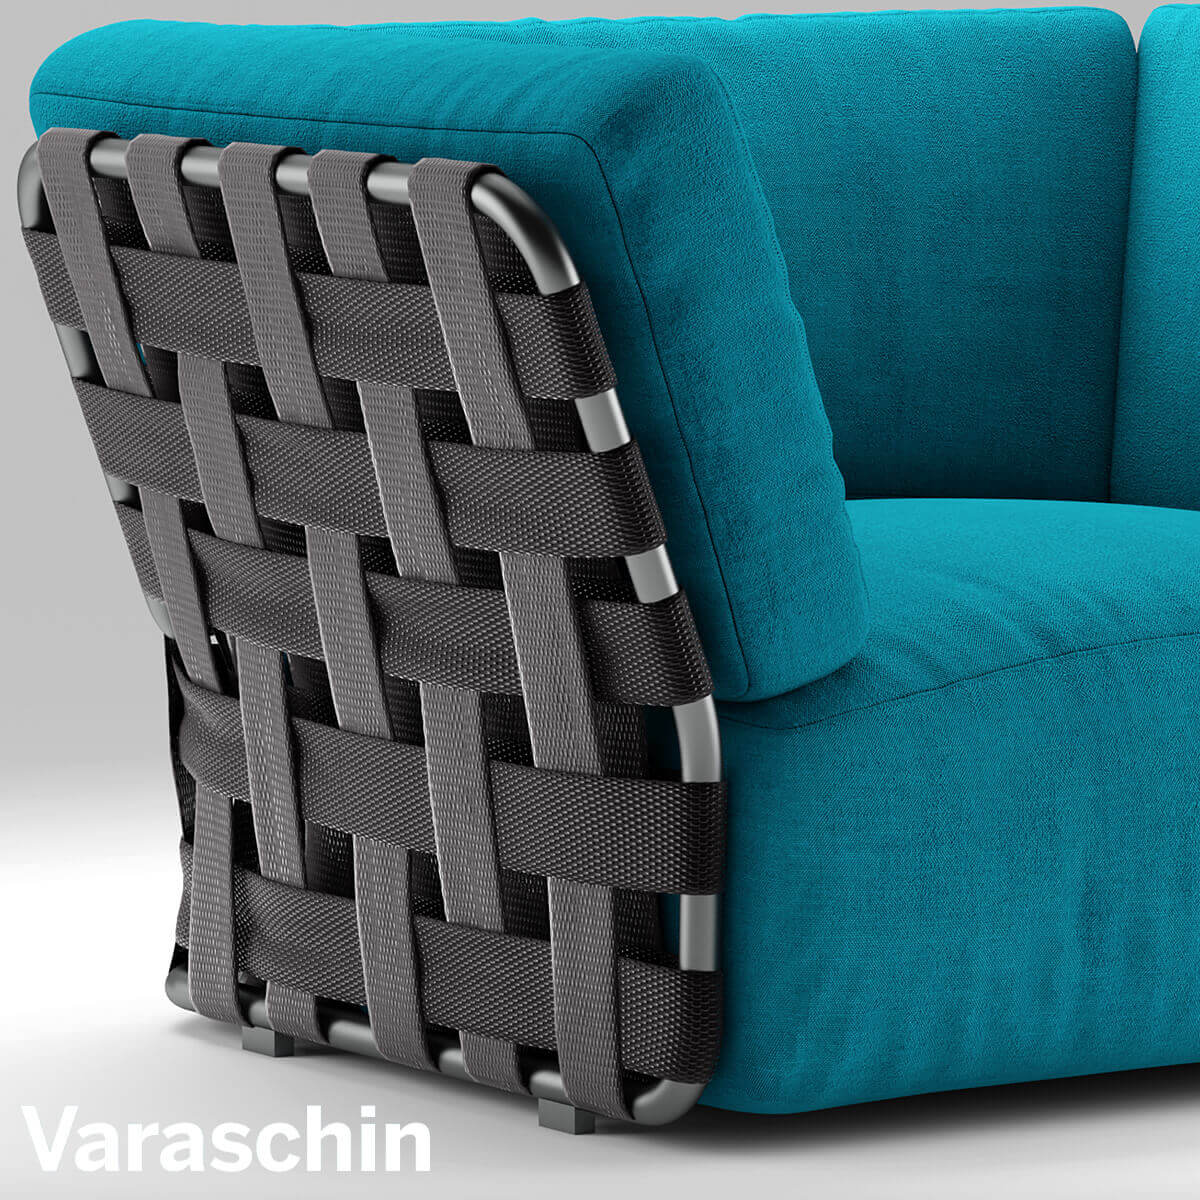 Chair Varaschin Victor Sofa 3D Model Outdoor Furniture 5